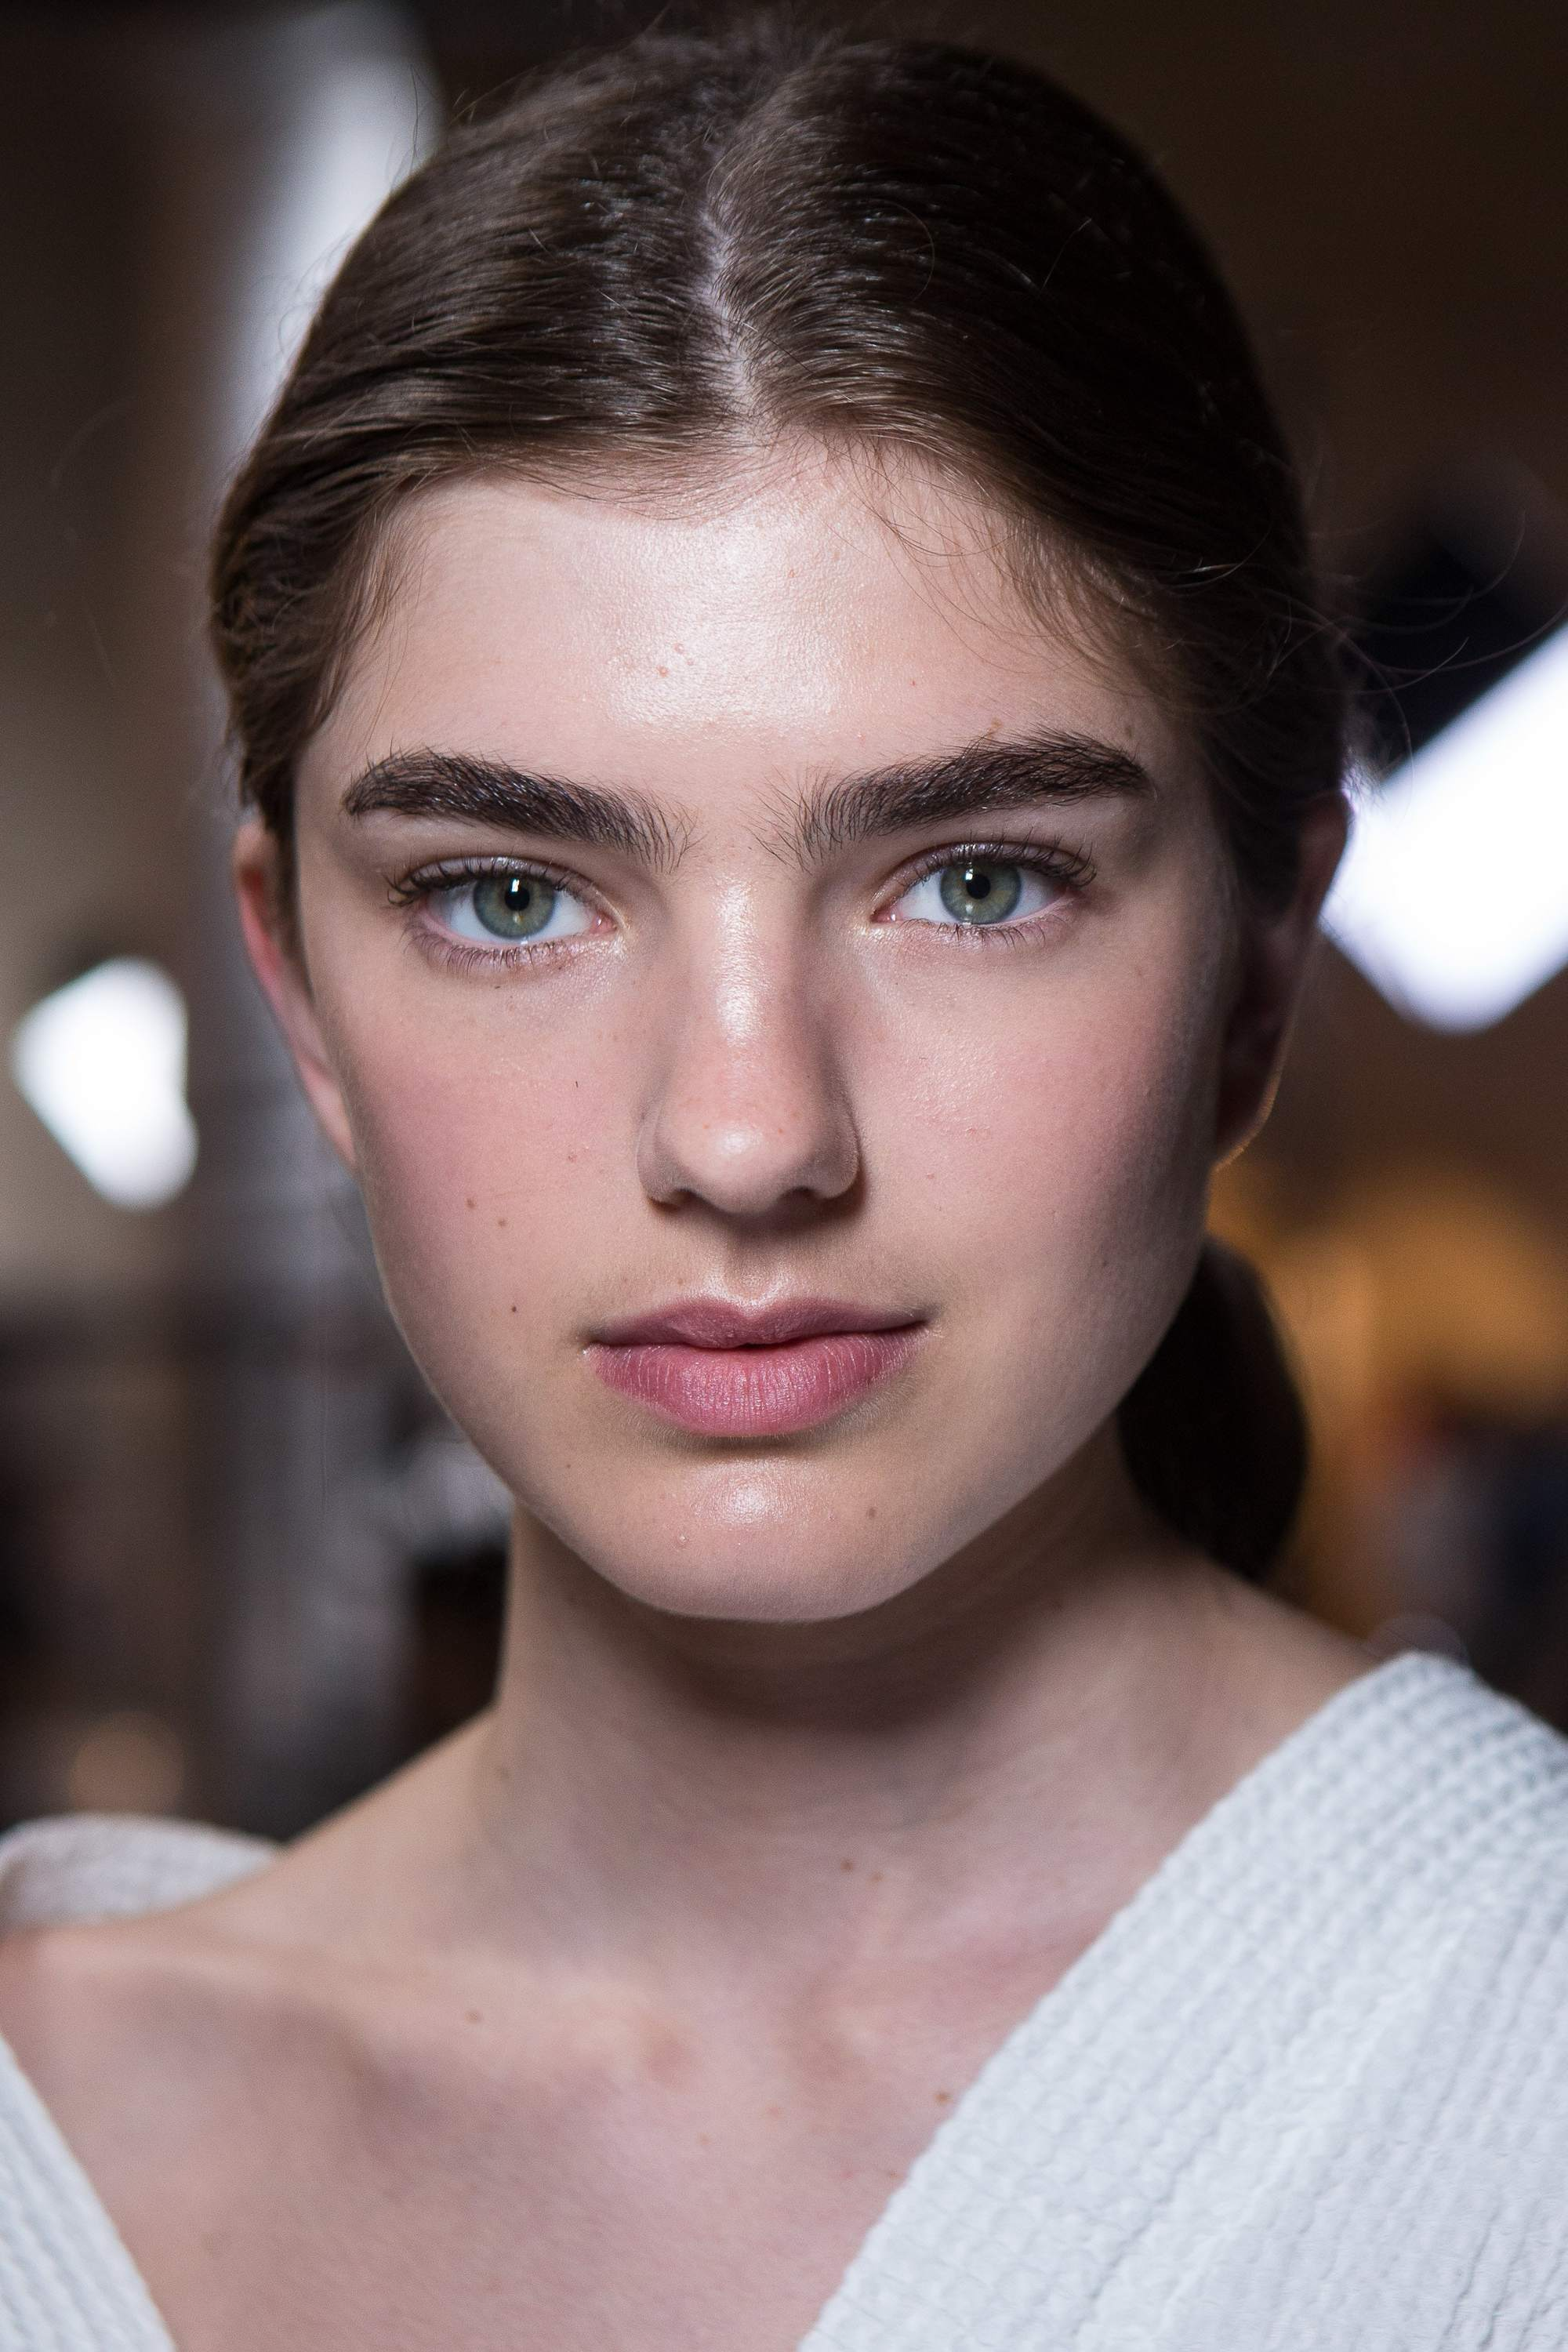 brunette model backstage at a fashion show with bushy brows